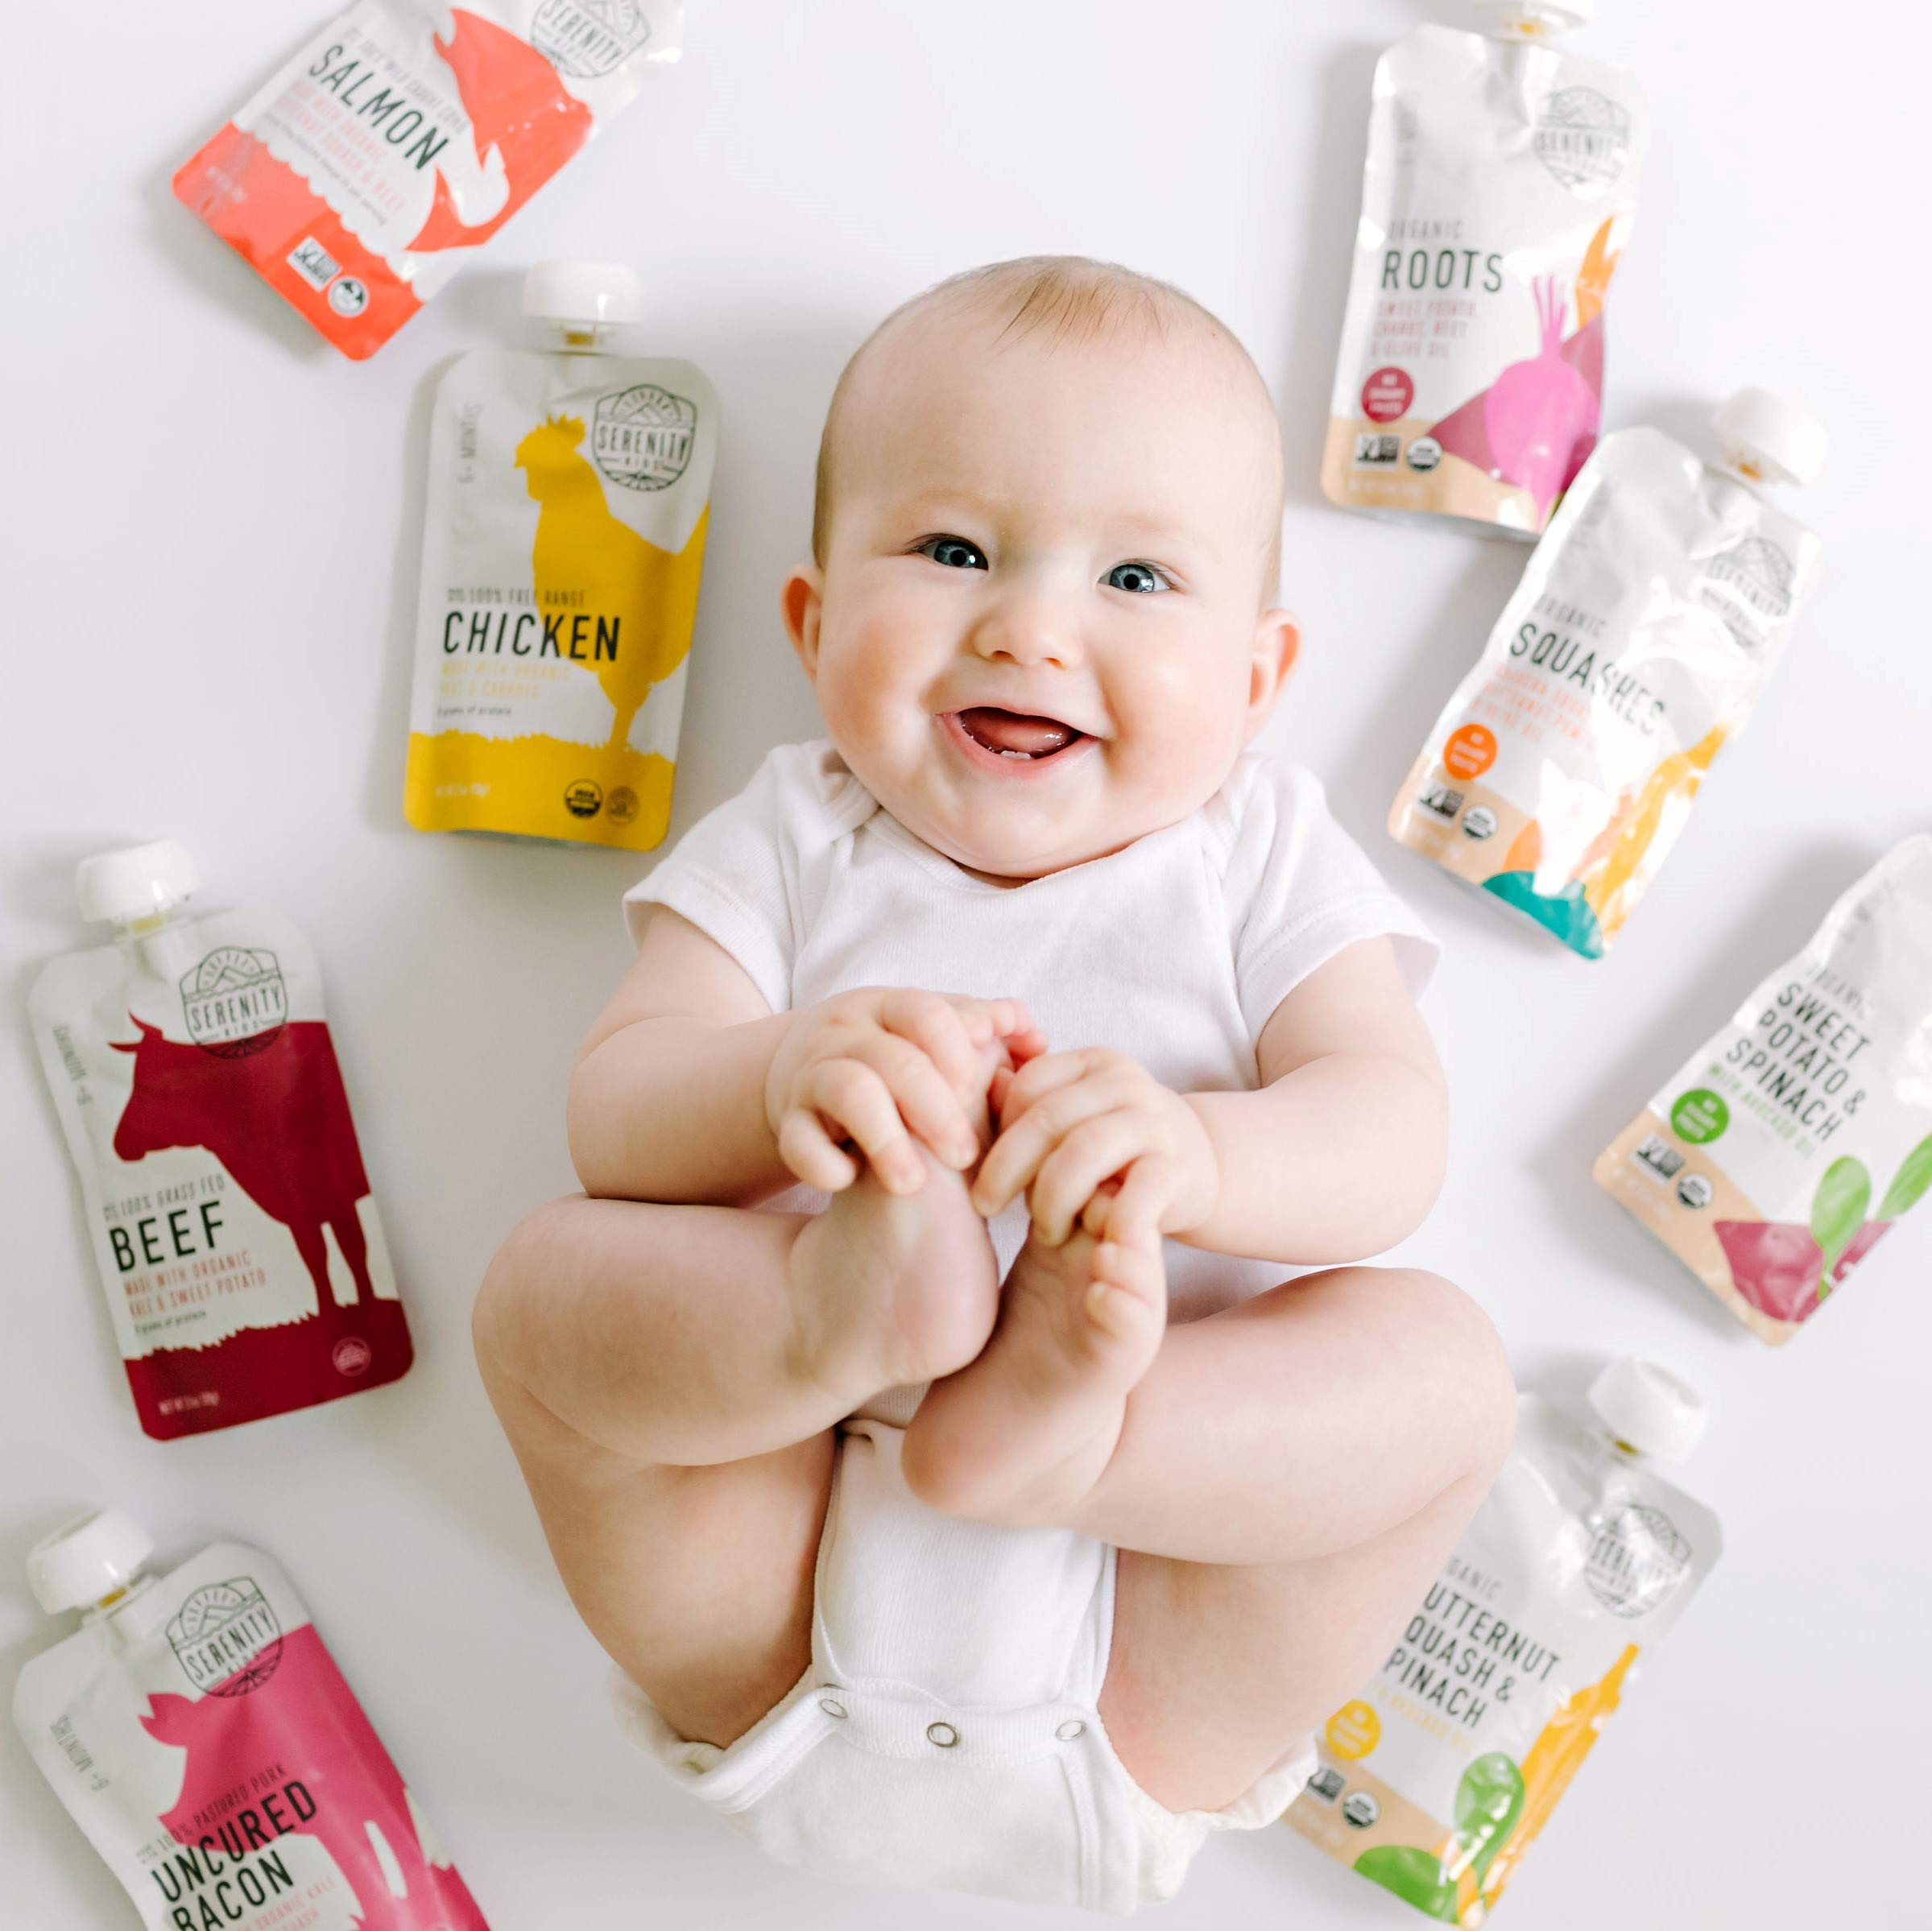 Serenity Kids Baby Food, Ethically Sourced